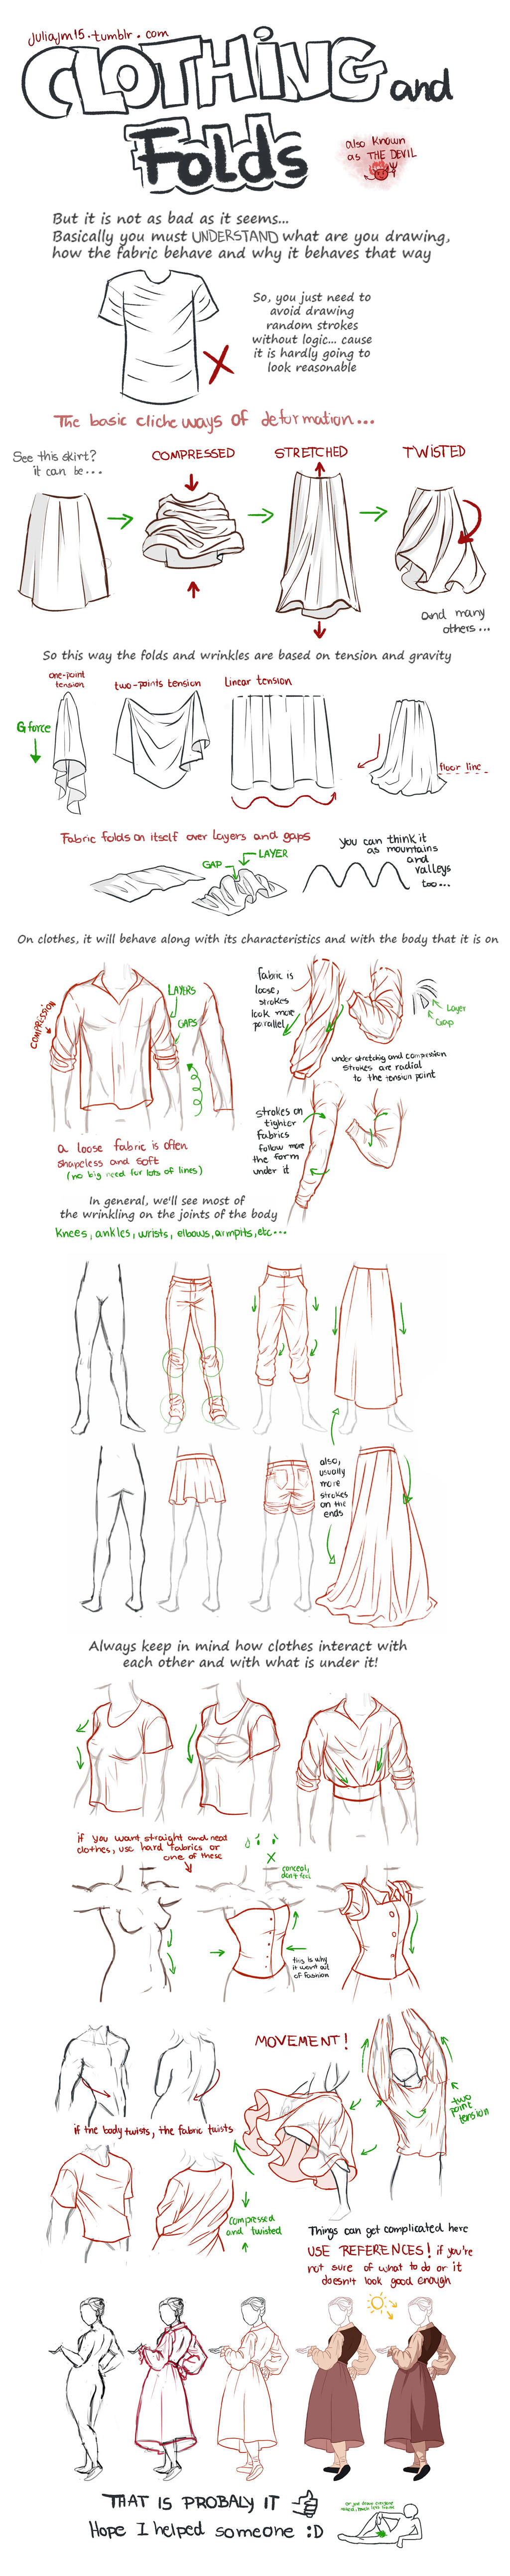 Clothing and Folds Tutorial